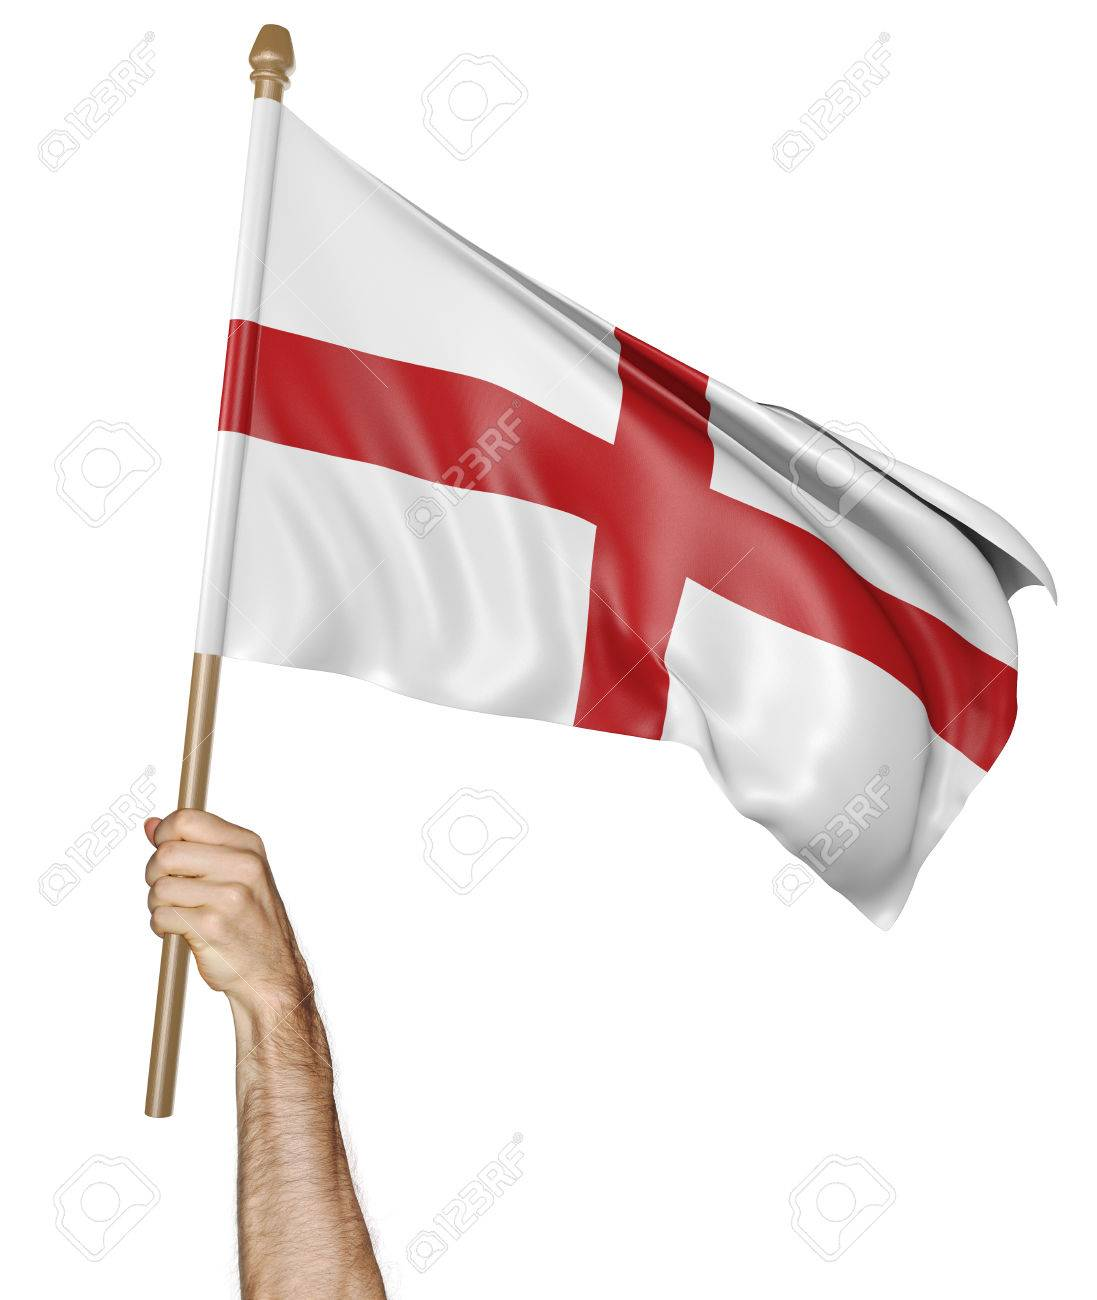 Hand proudly waving the national flag of England - 52232211